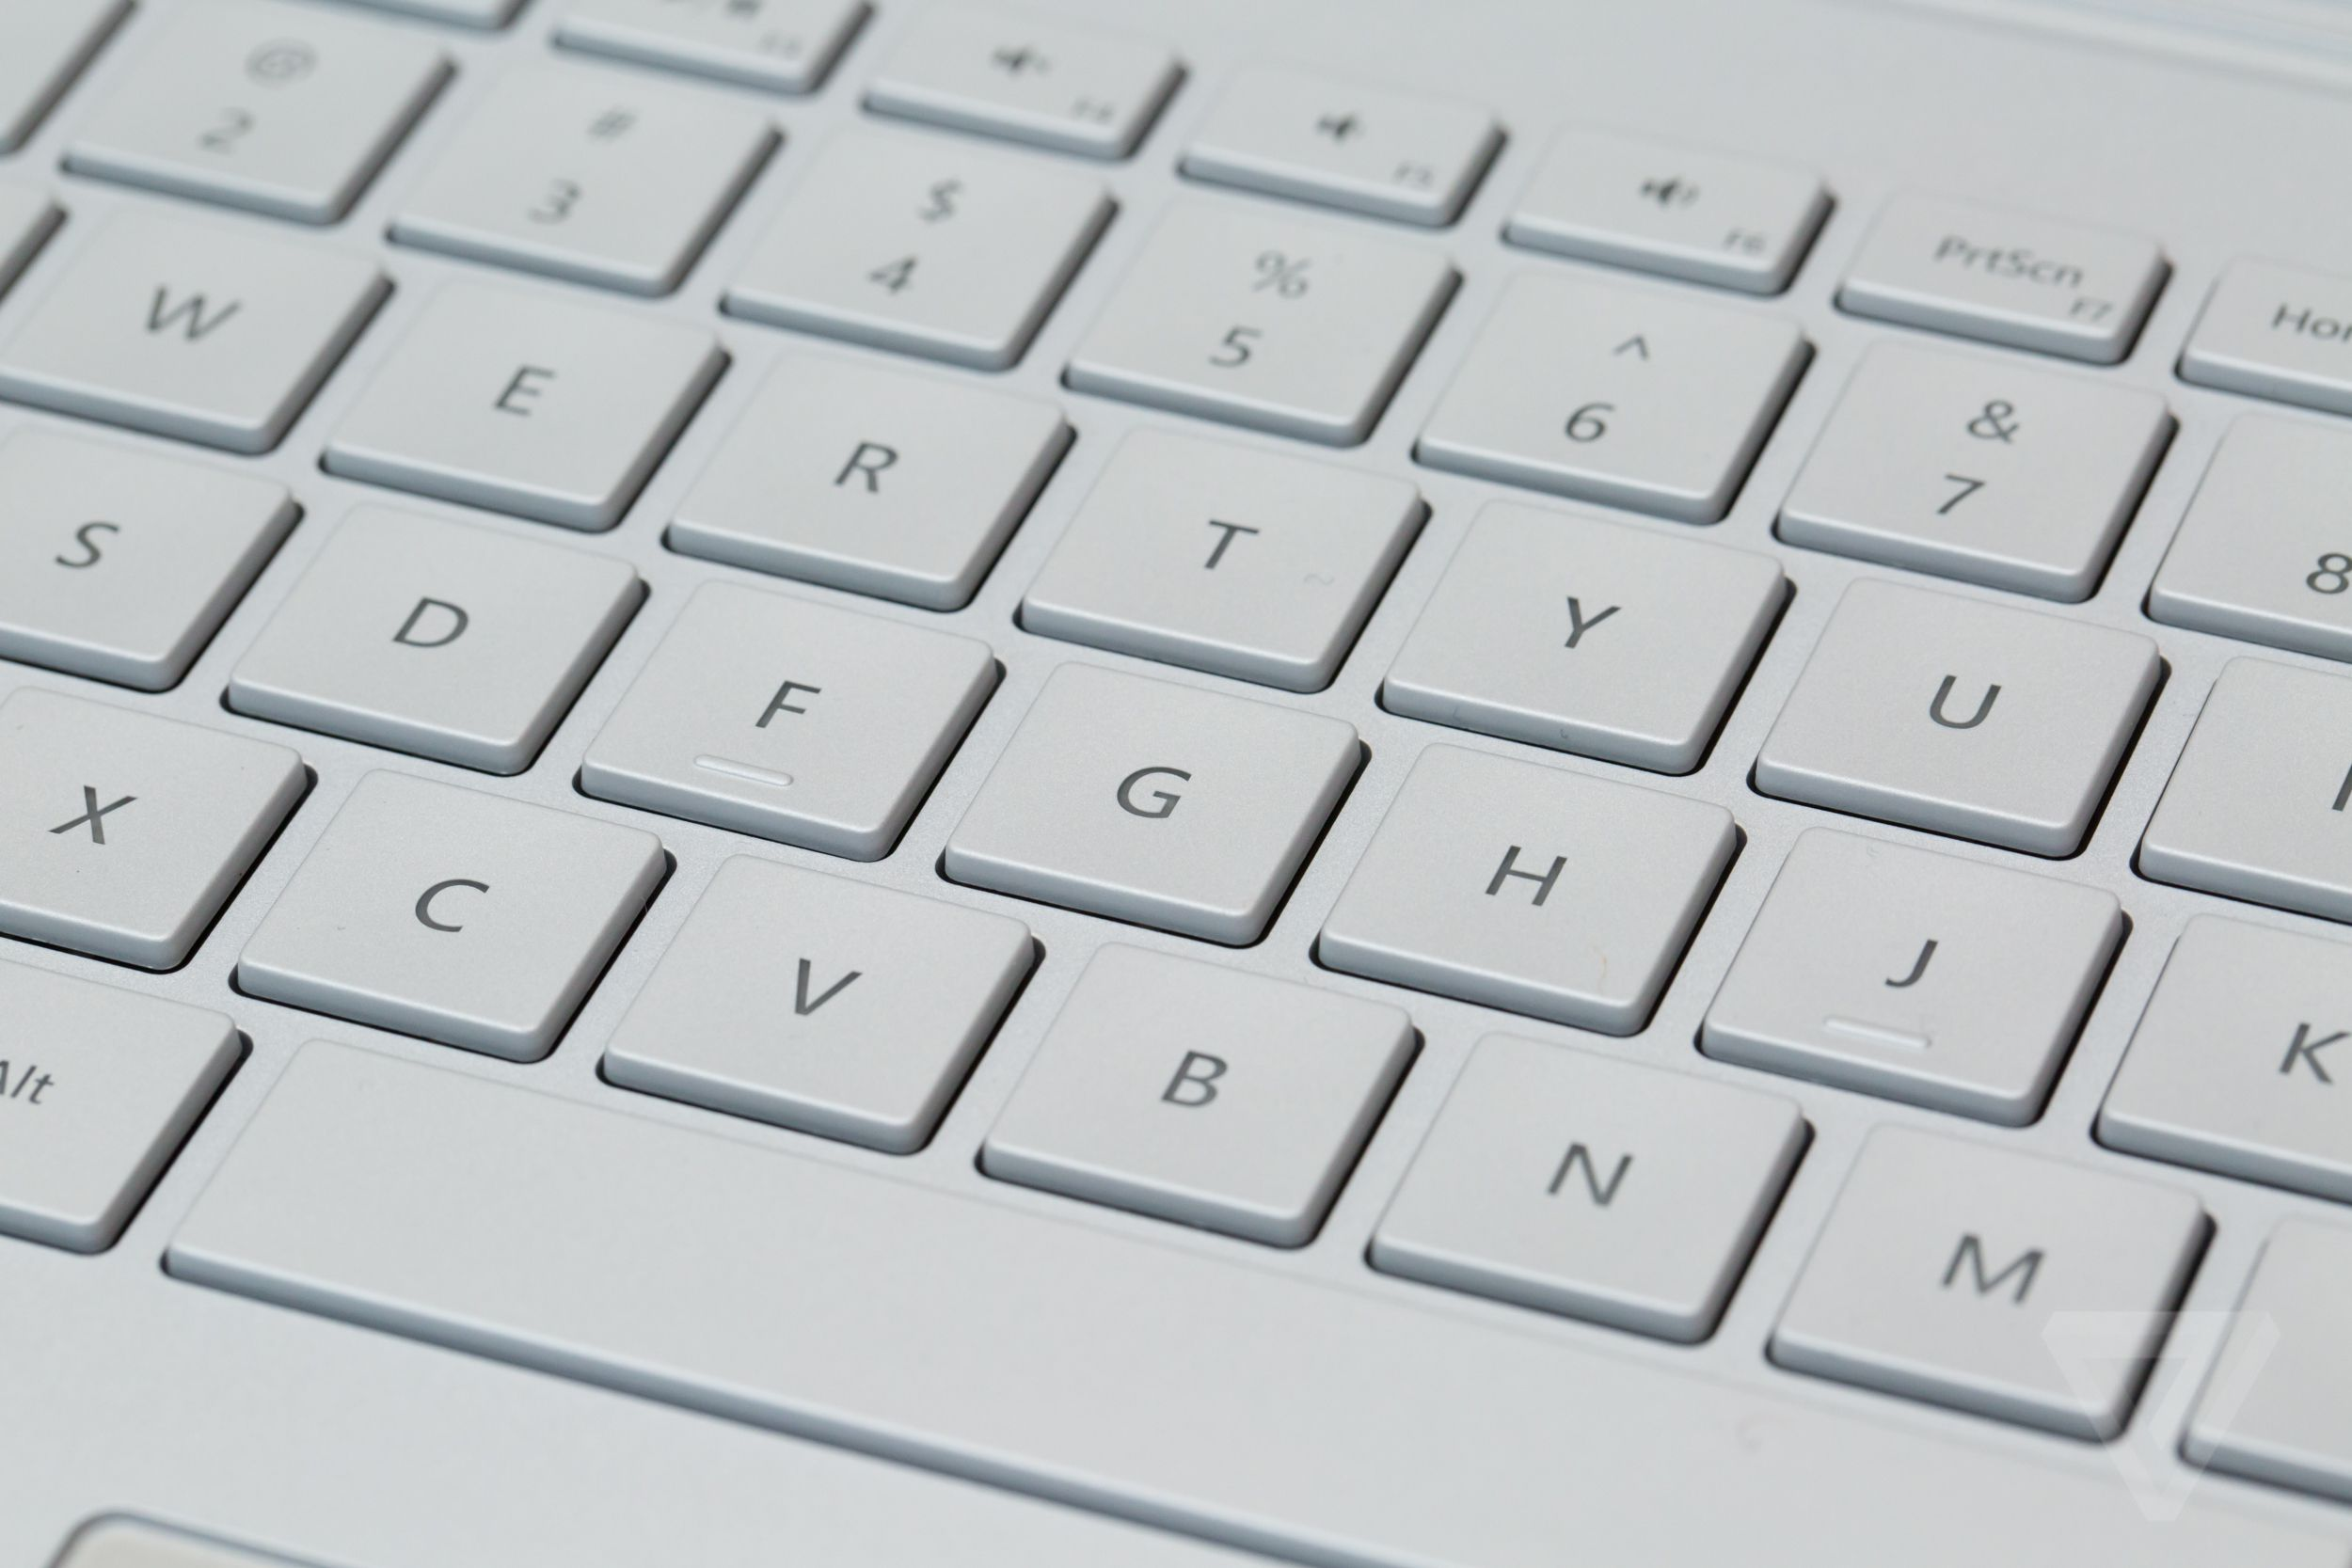 For One More Day Book Report  Microsoft Surface Book Review The Verge  Surface Book Keyboard